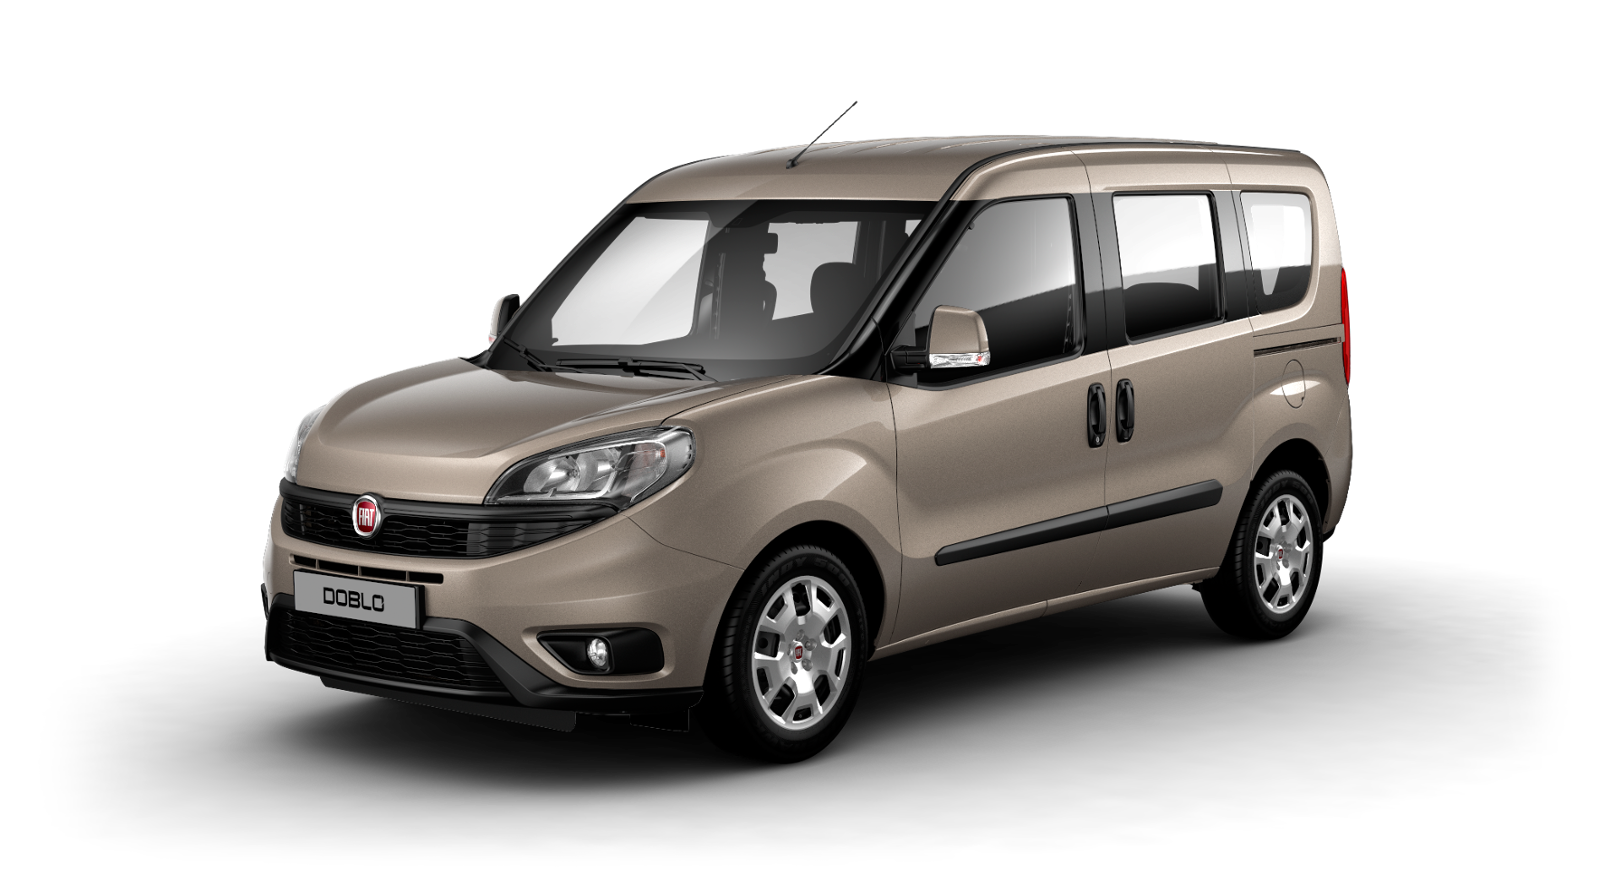 fiat doblo configuratore idea di immagine auto. Black Bedroom Furniture Sets. Home Design Ideas